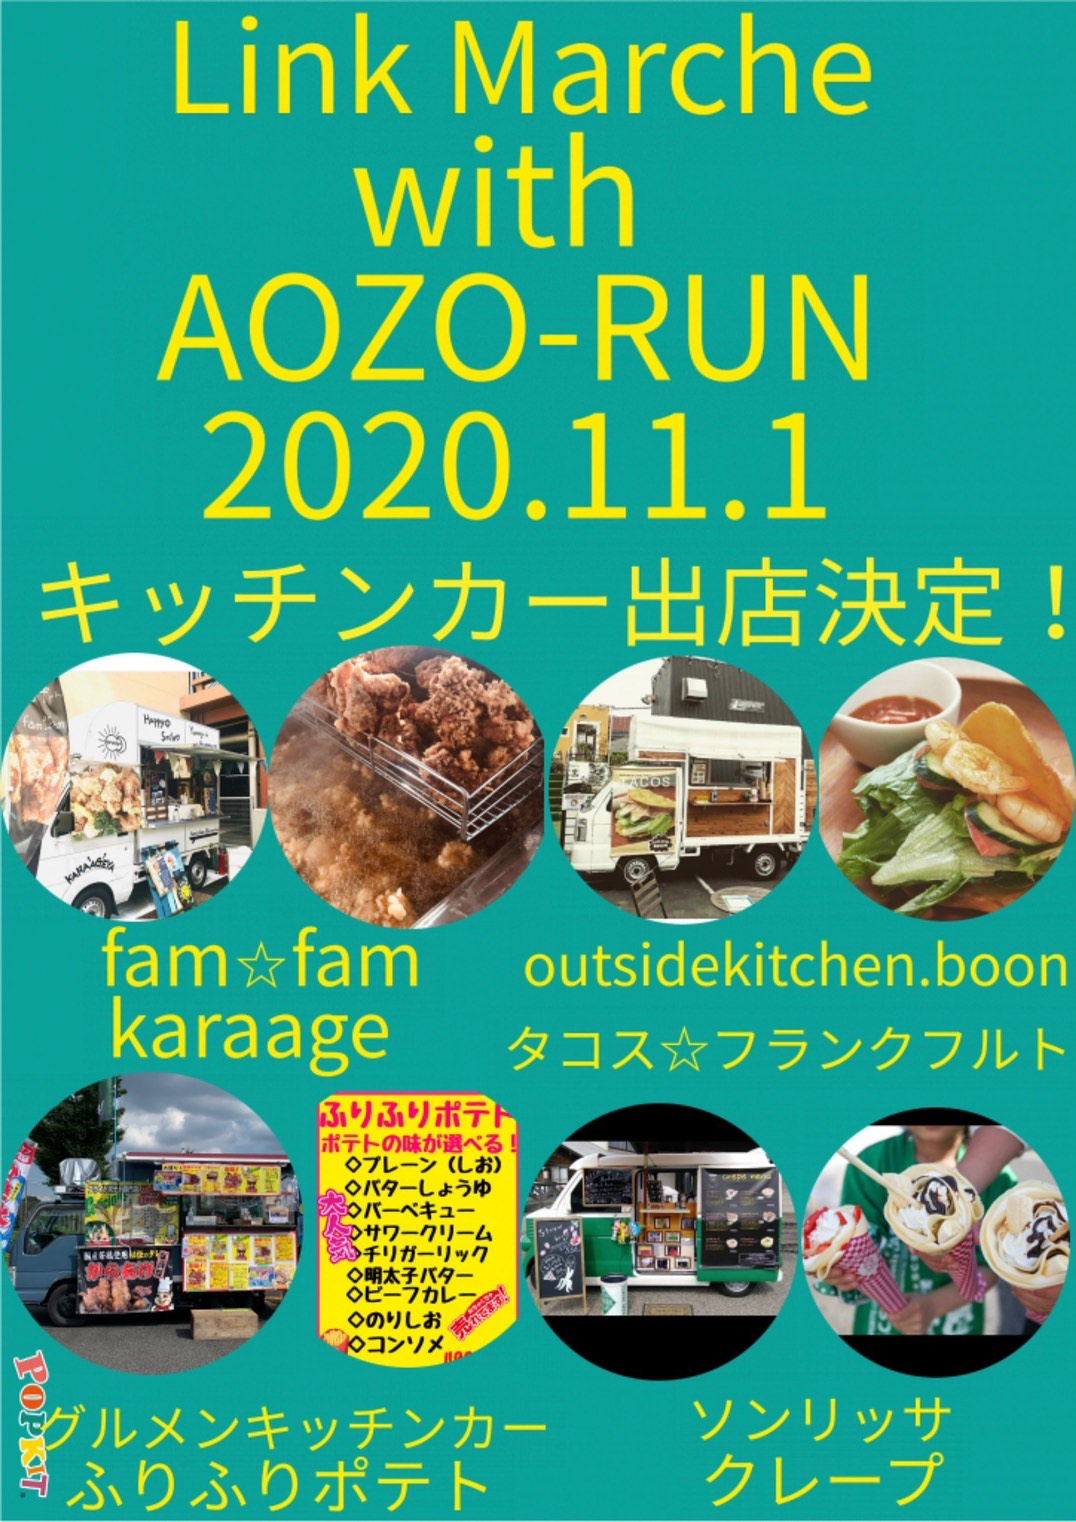 Link Marche with AOZO-RUNイベントキッチンカー決定!!